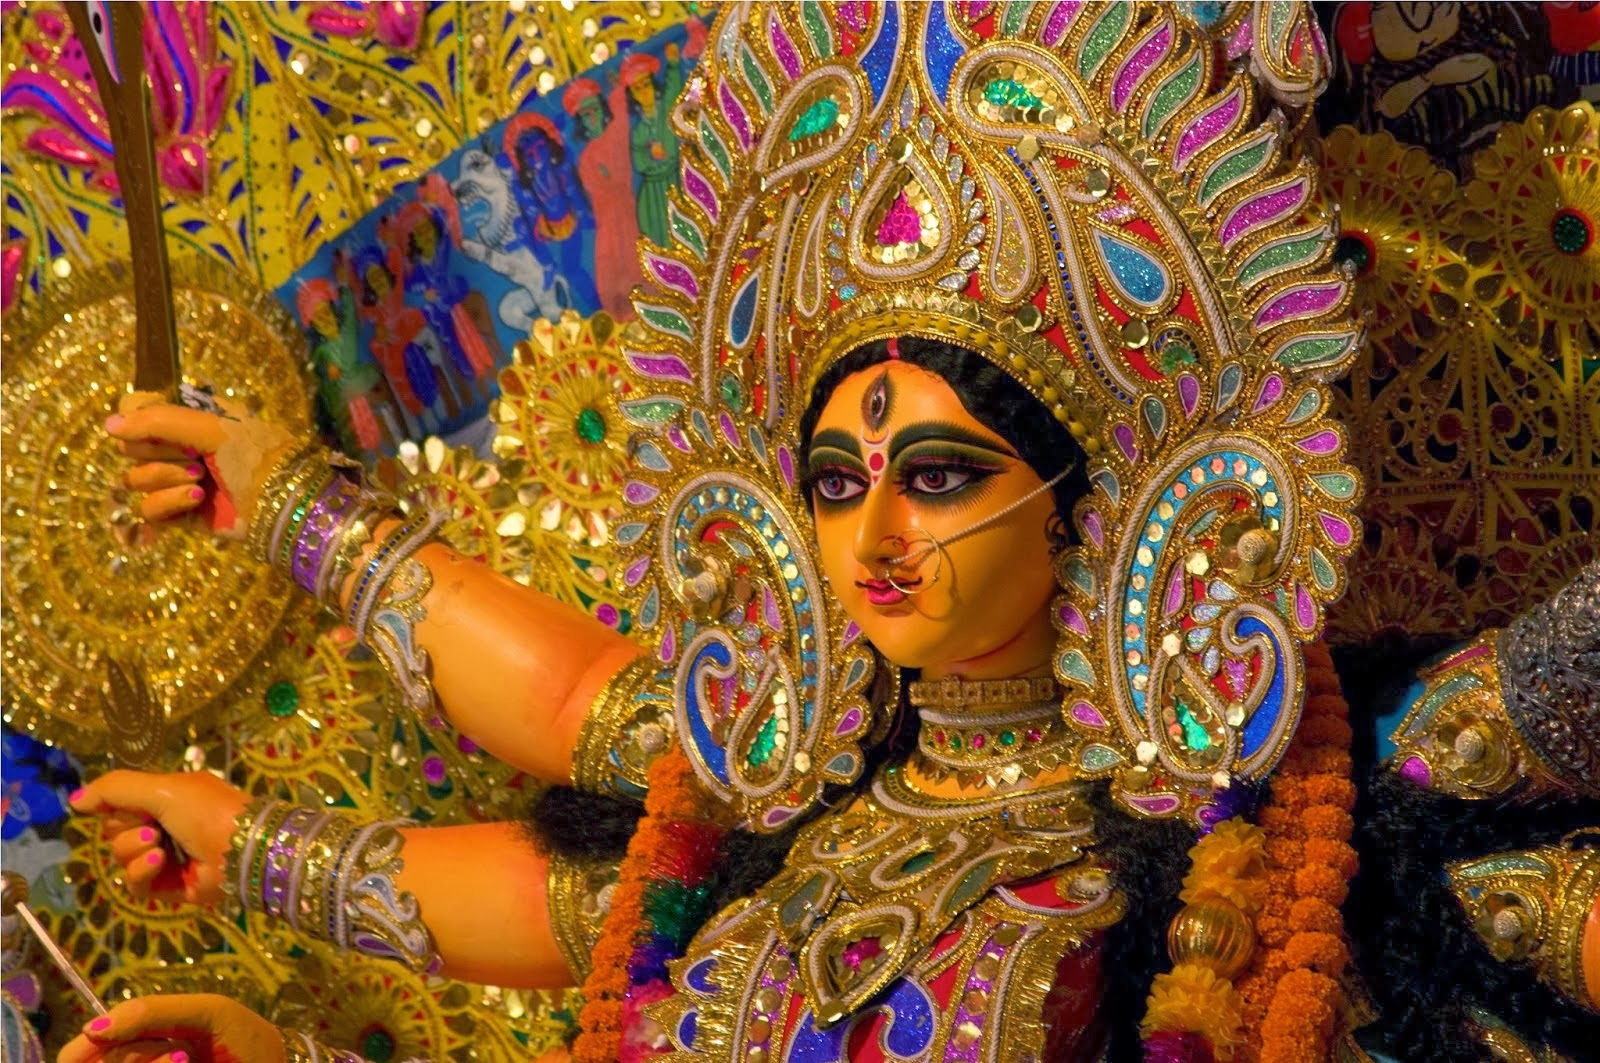 Durga Puja Hd Wallpaper: Durga Ashtami HD Wallpapers Download